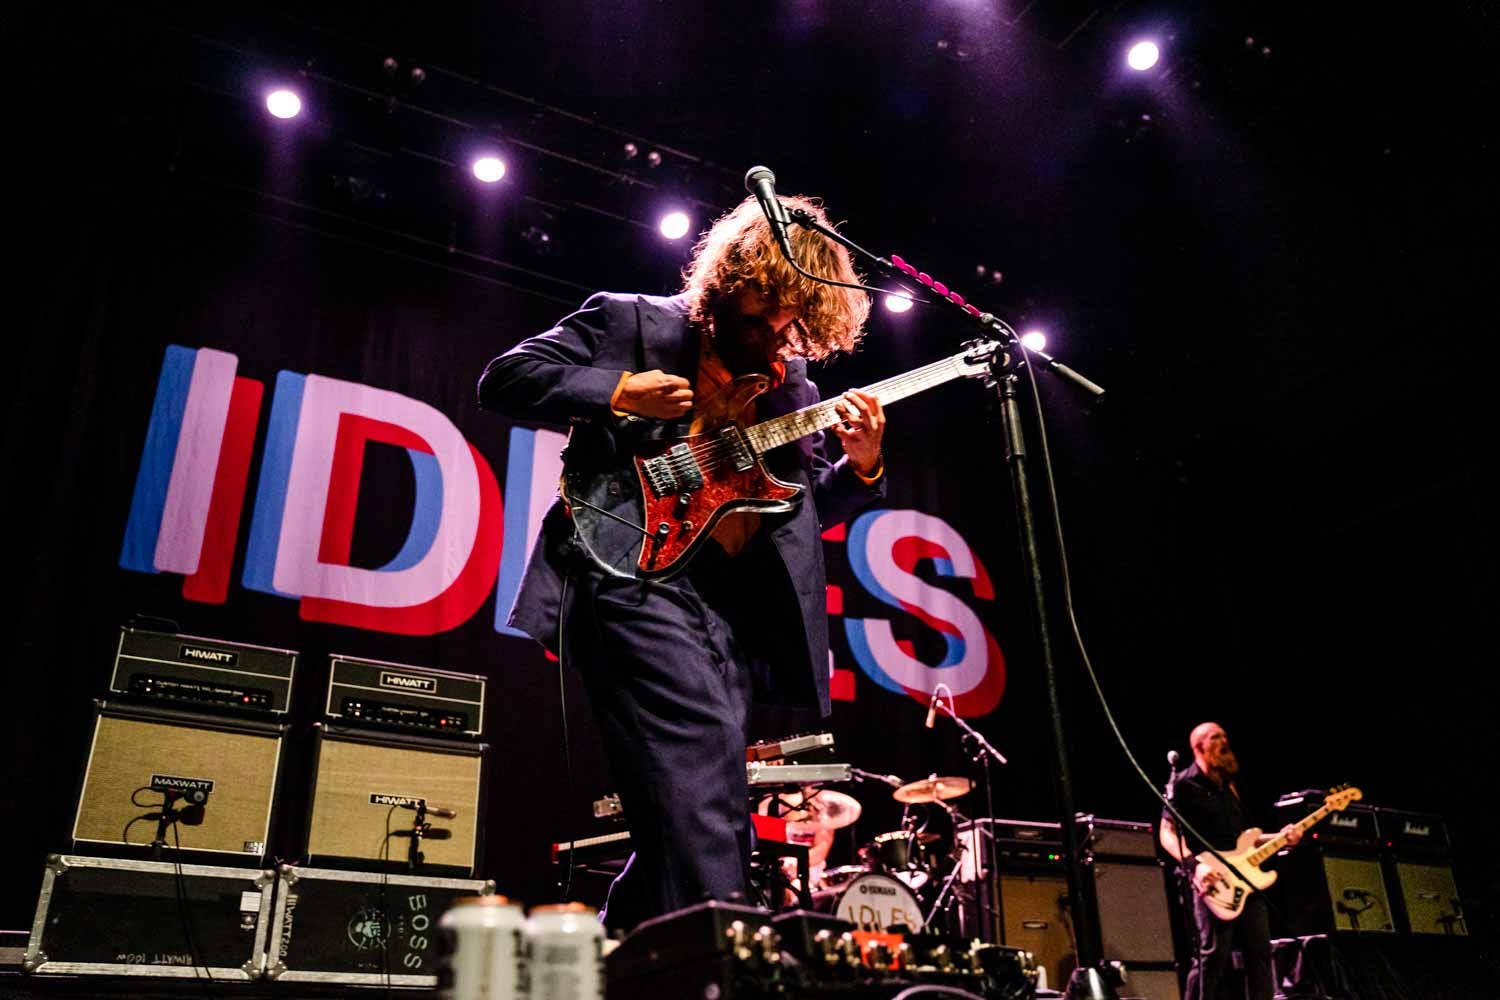 IDLES AT PALACE THEATER